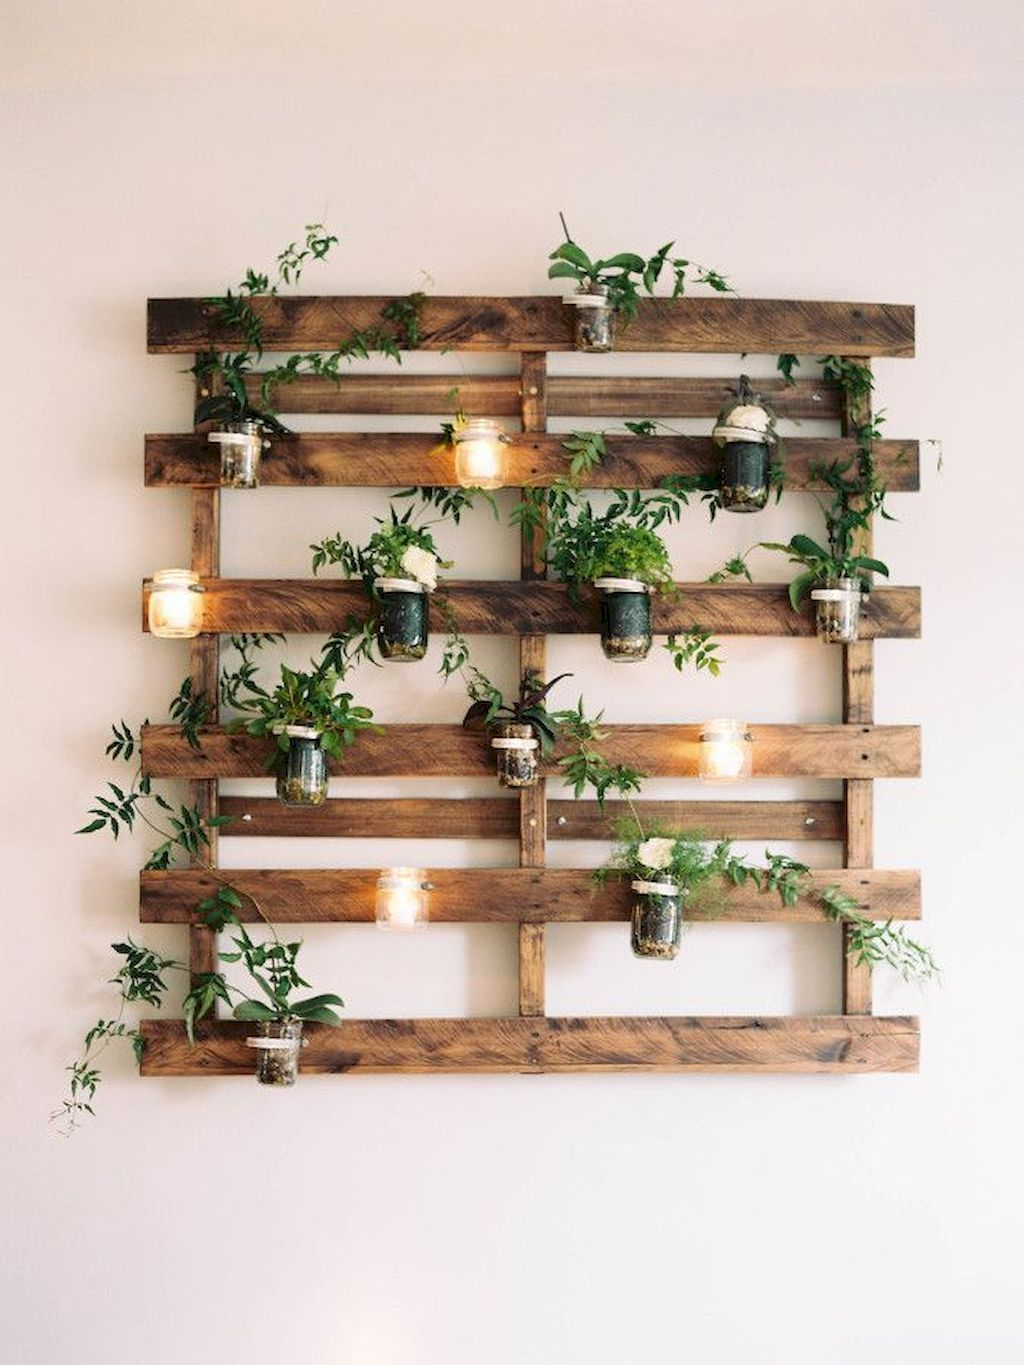 Cheap Wall Decor From Scrap Wood Pallets Cheap Wall Decor from Scrap Wood Pallets Wall Decor wall decoration